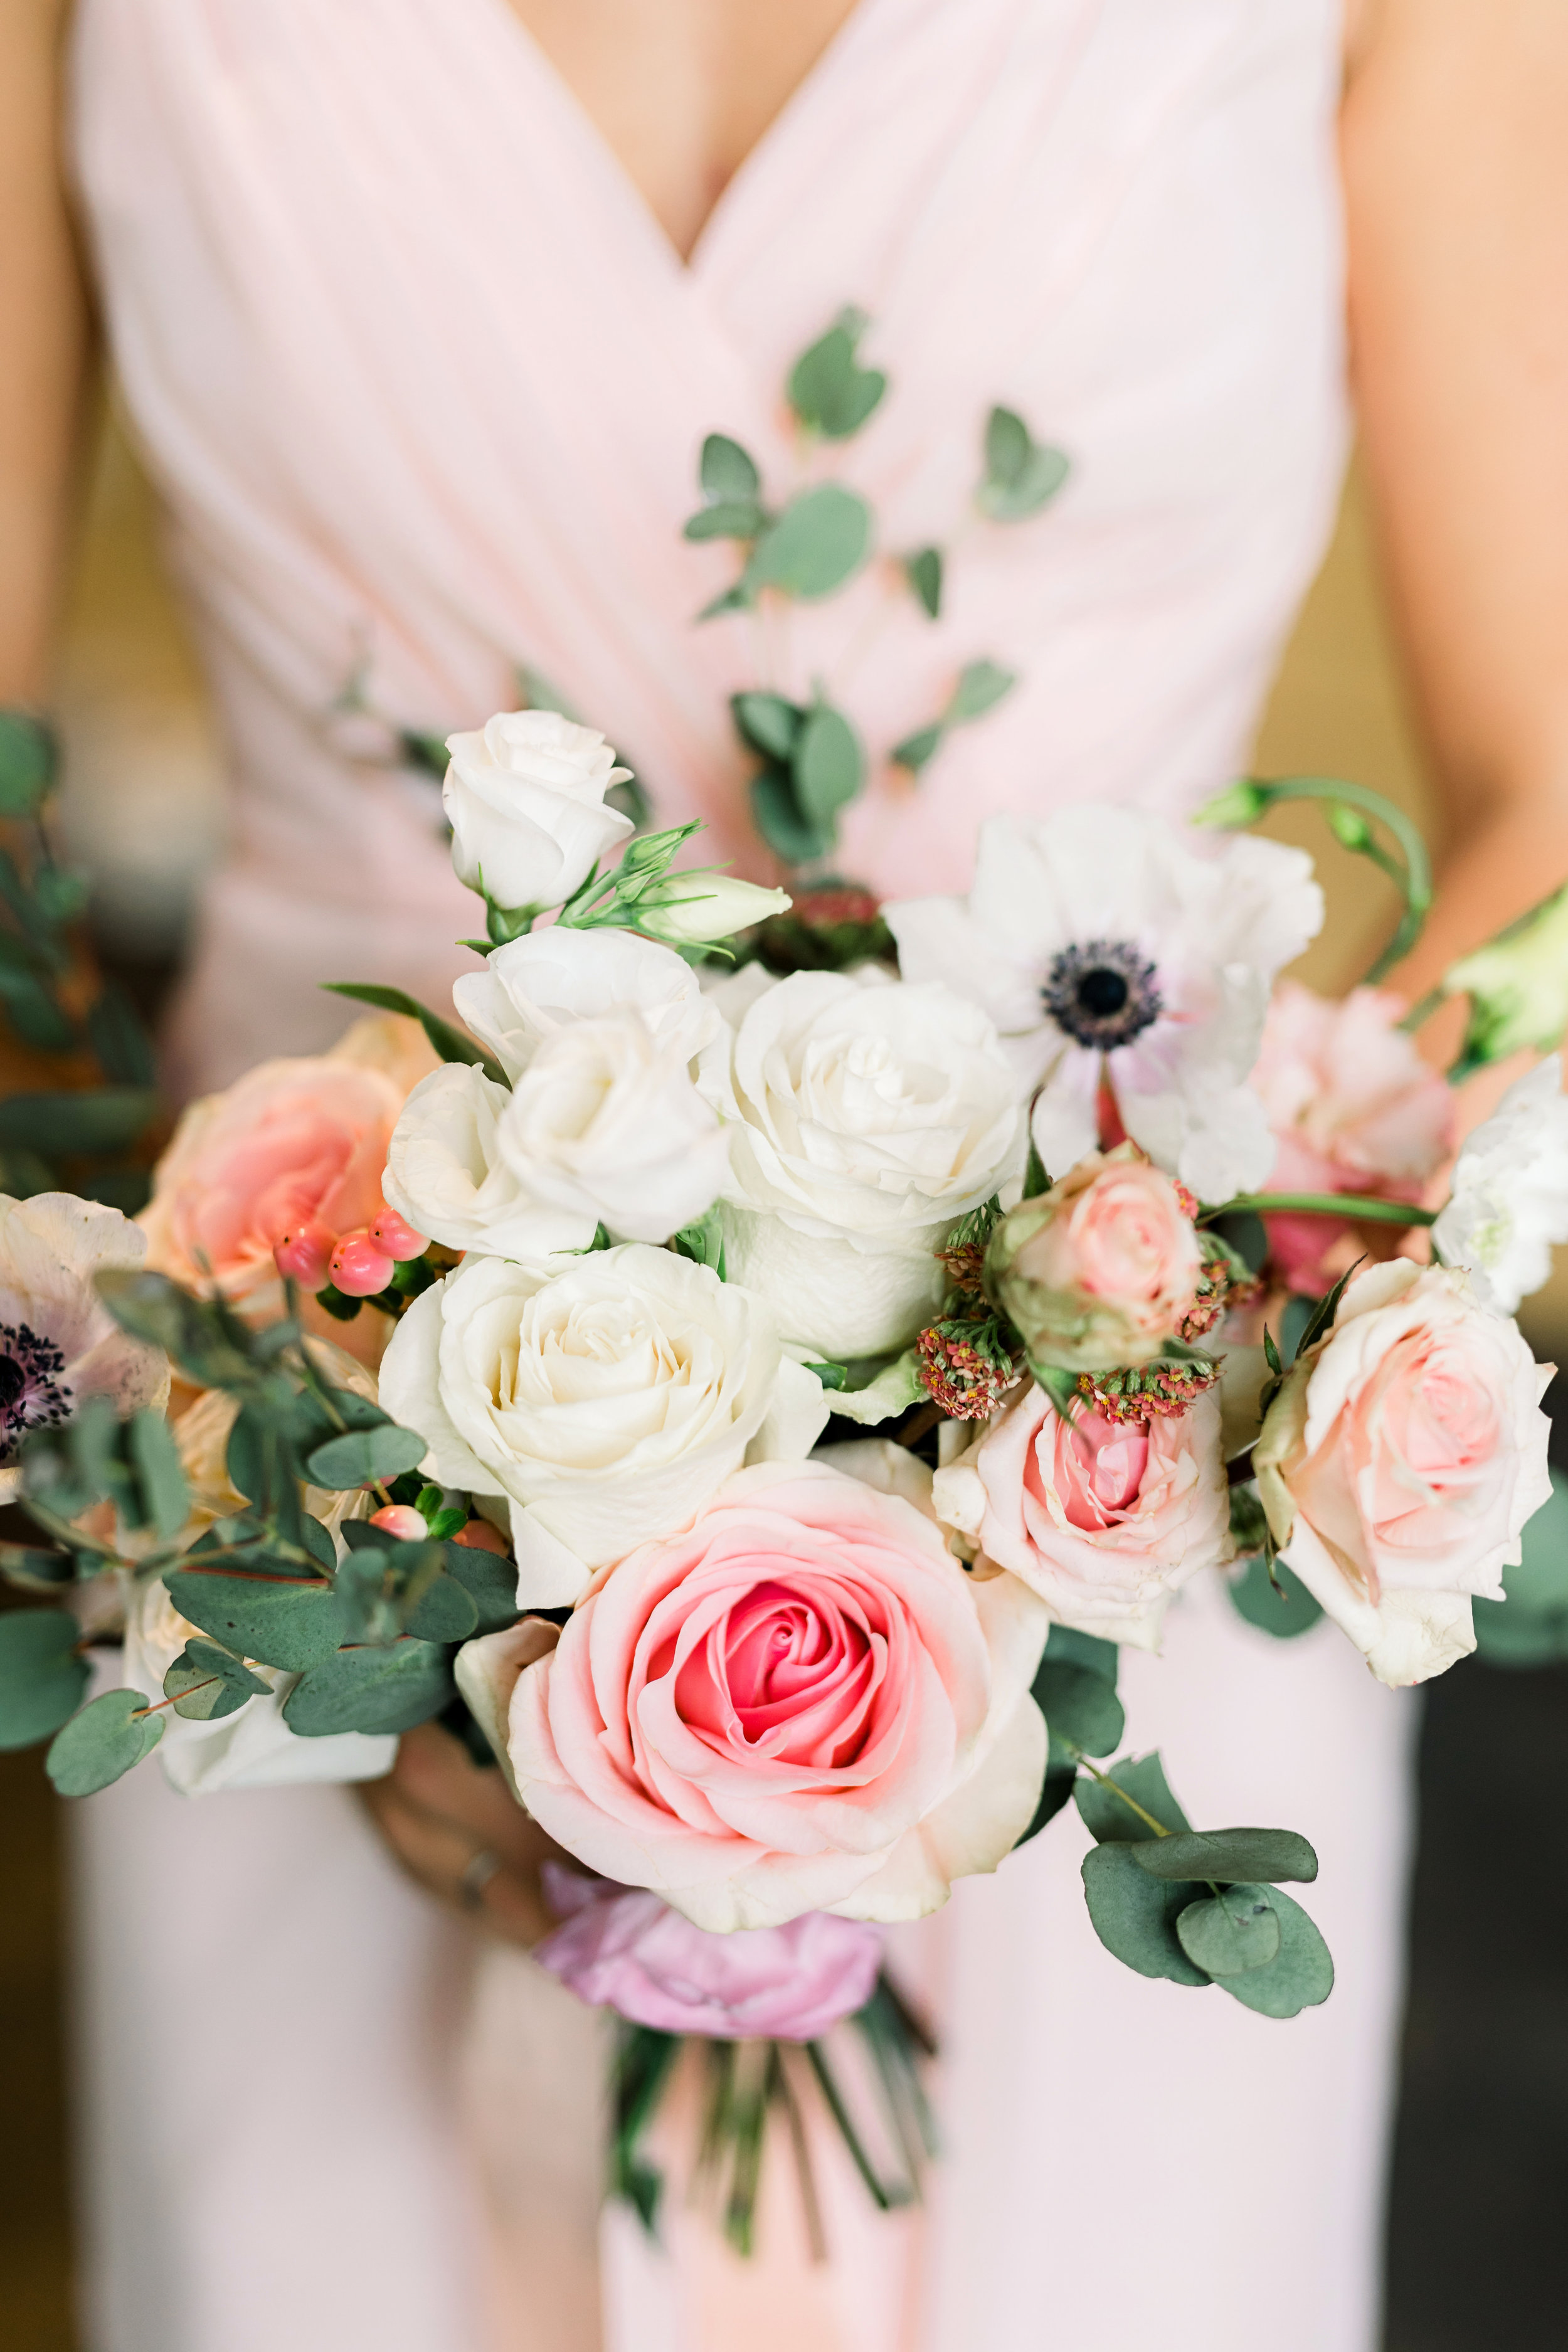 The maid of honor bouquet!